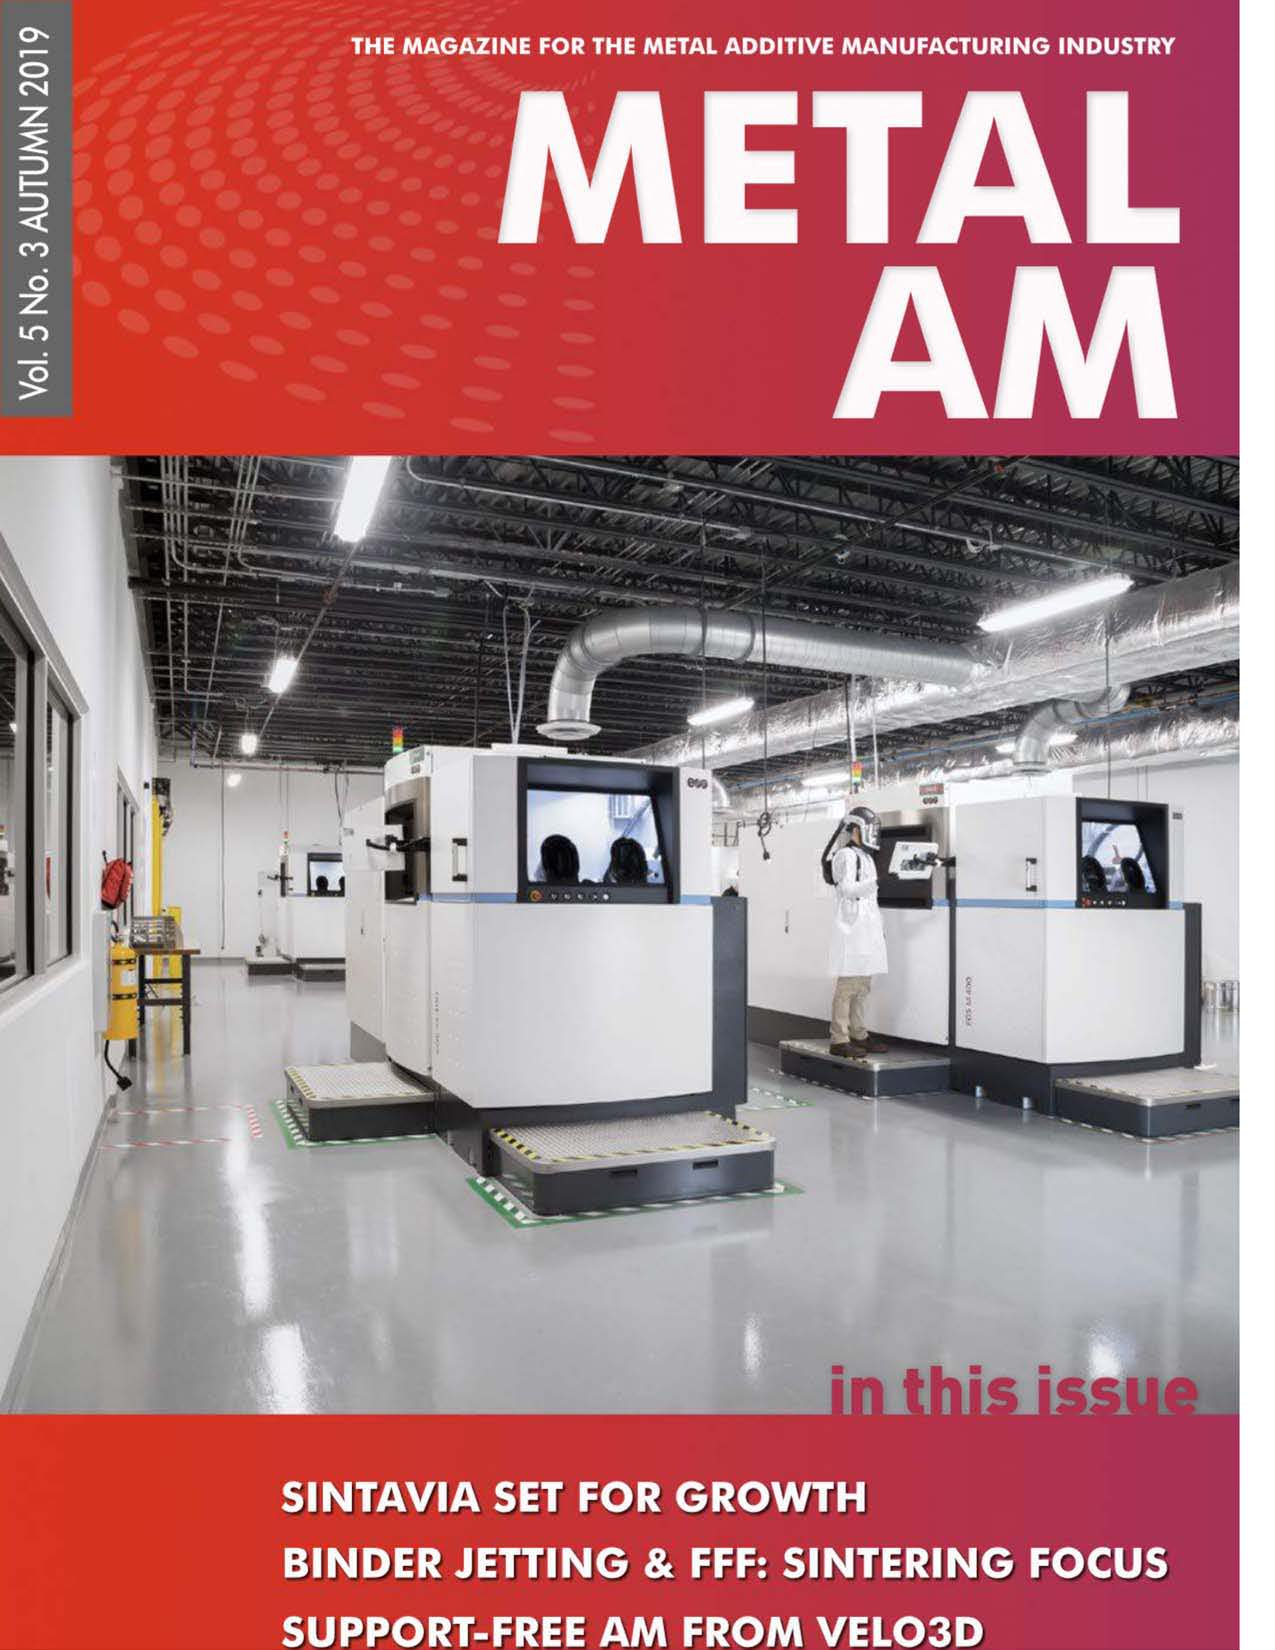 VI Ventures Article on Metal AM cover